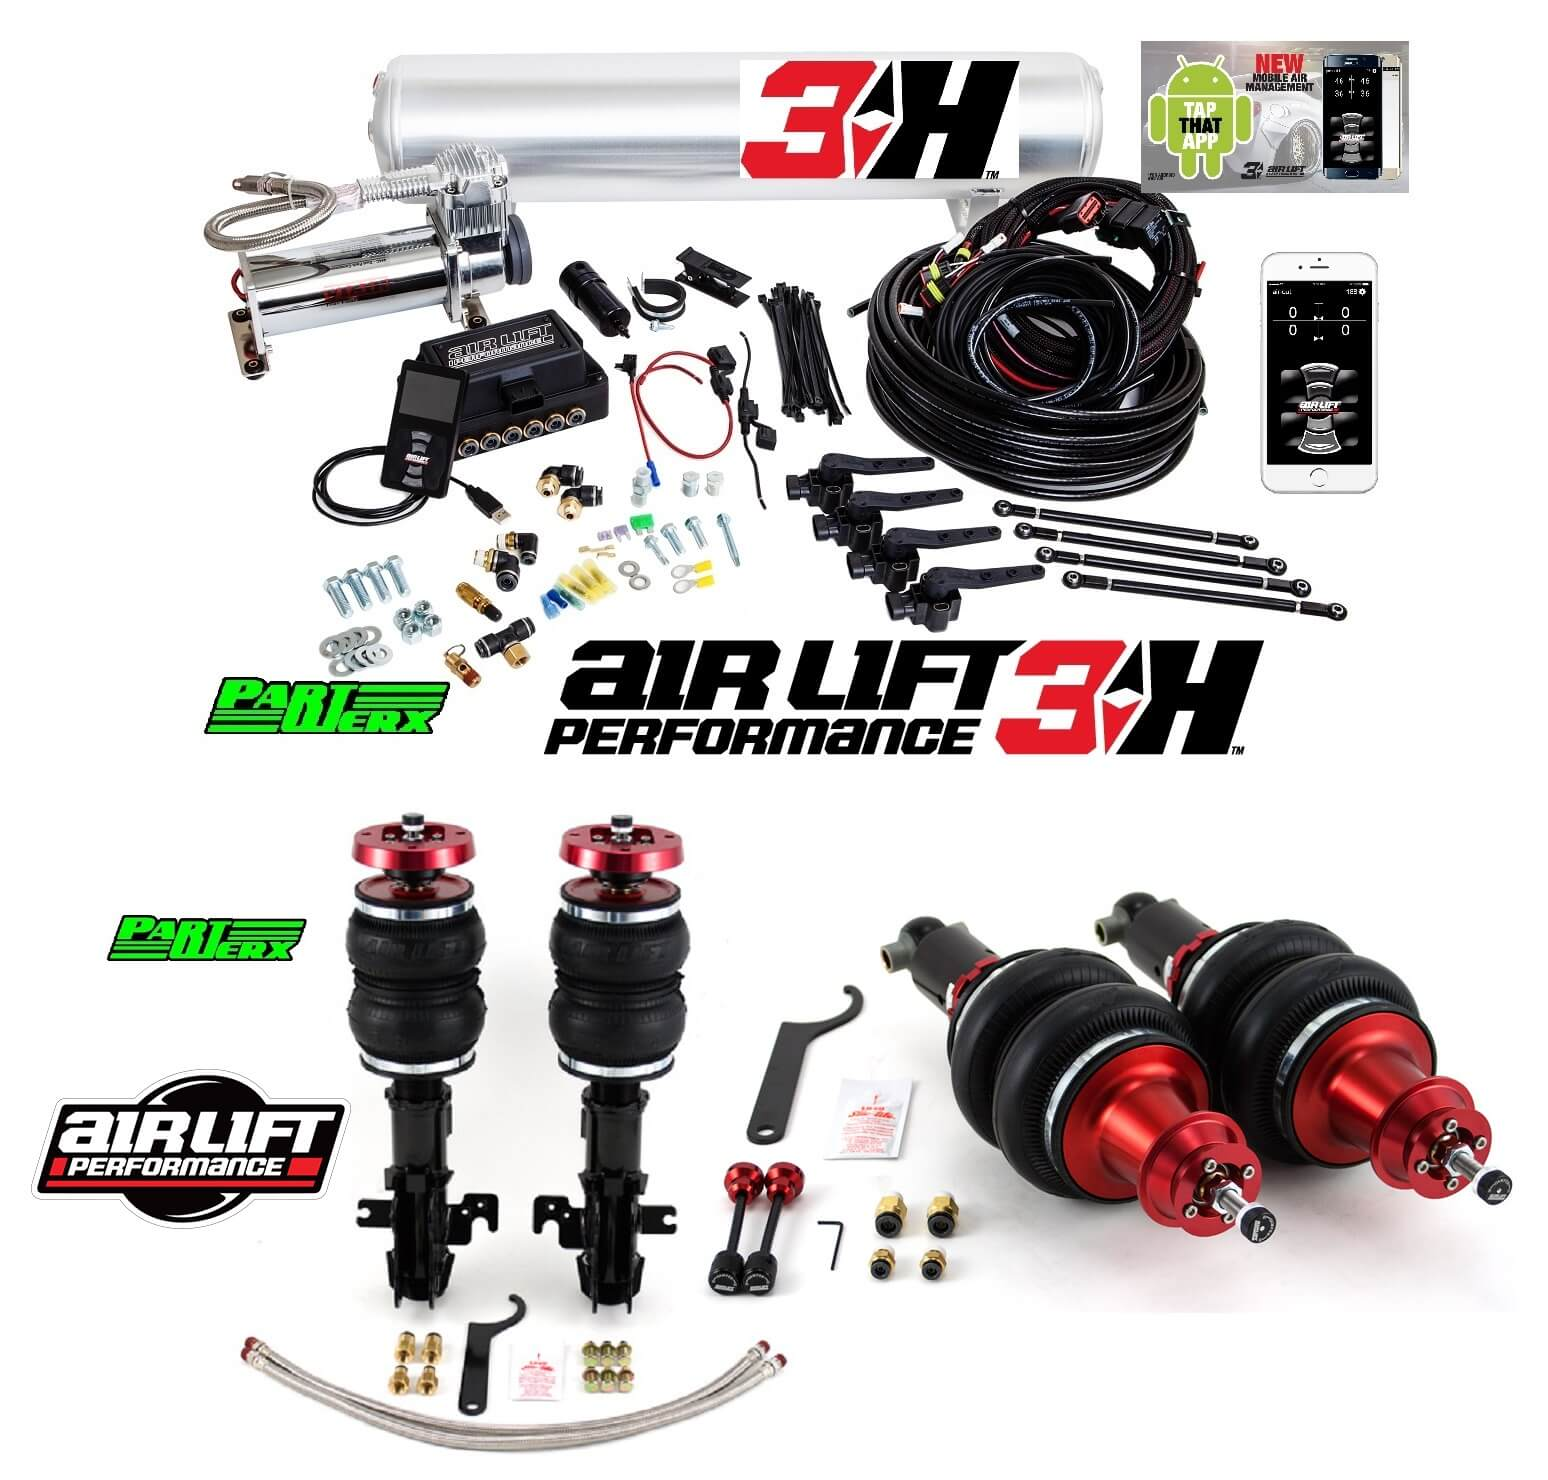 camaro 10-15 airlift front + rear struts + 3H 78501 78601 27692